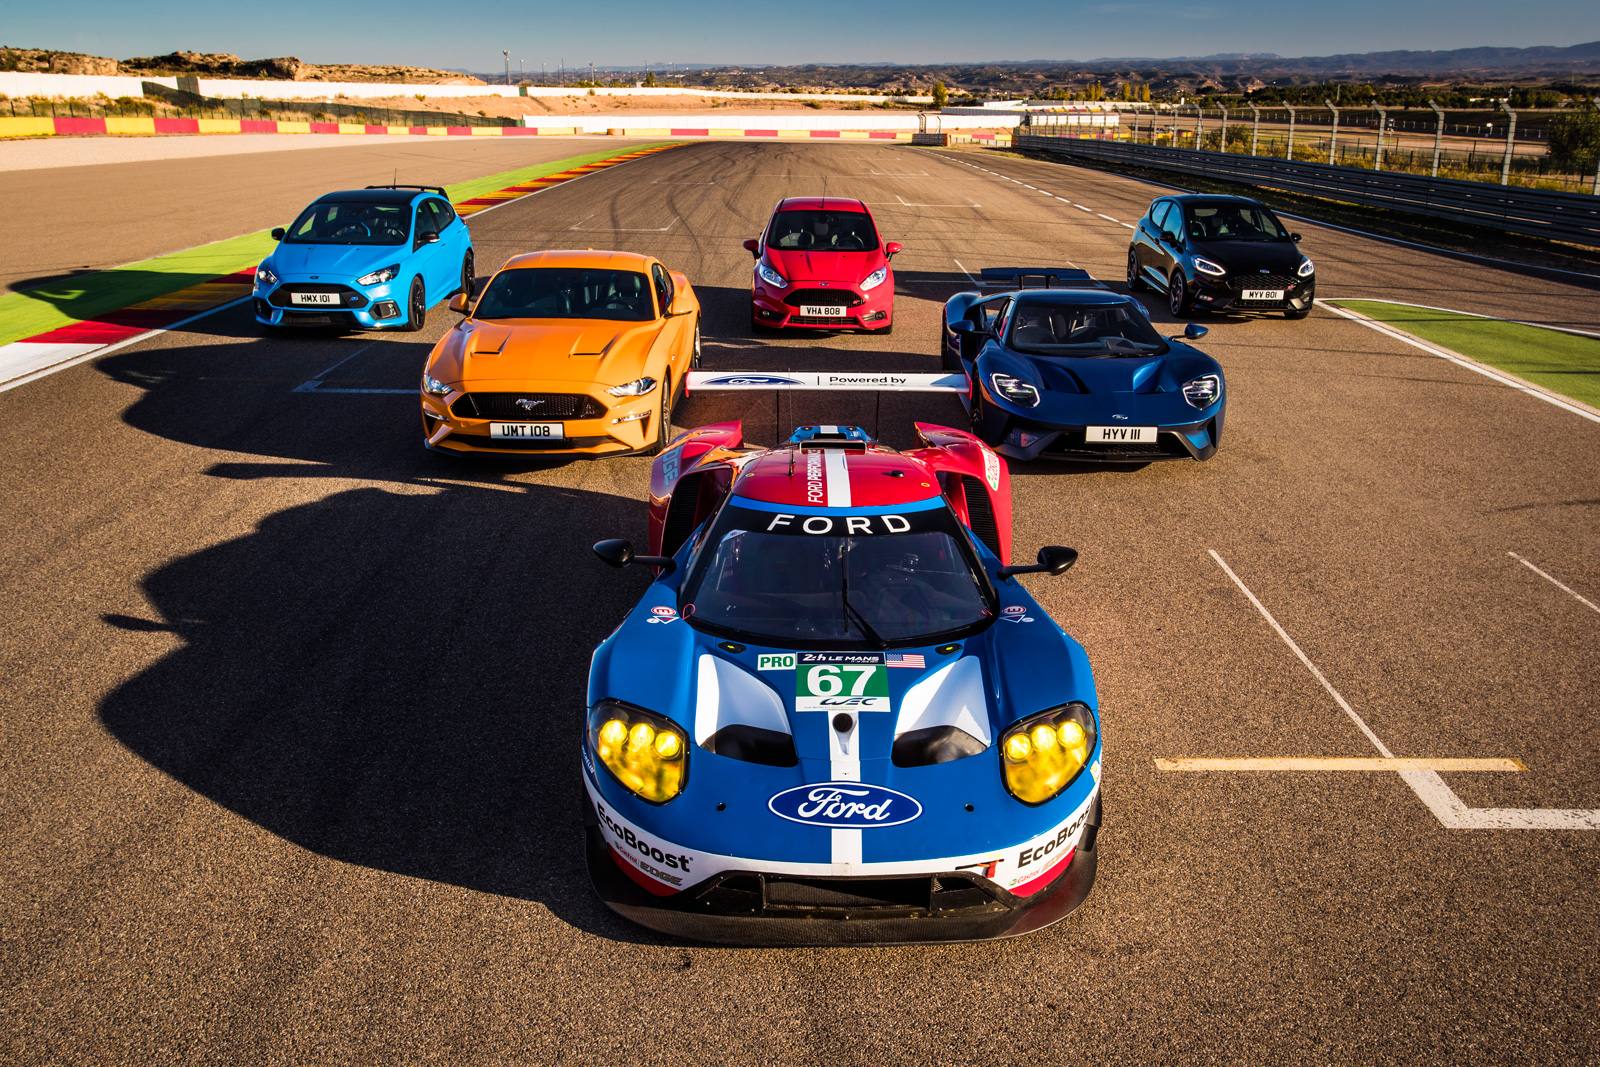 Used Ford Raptor >> So a Ford GT, Fiesta ST, Some Mustangs and a Raptor Walk into a Bar... » AutoGuide.com News